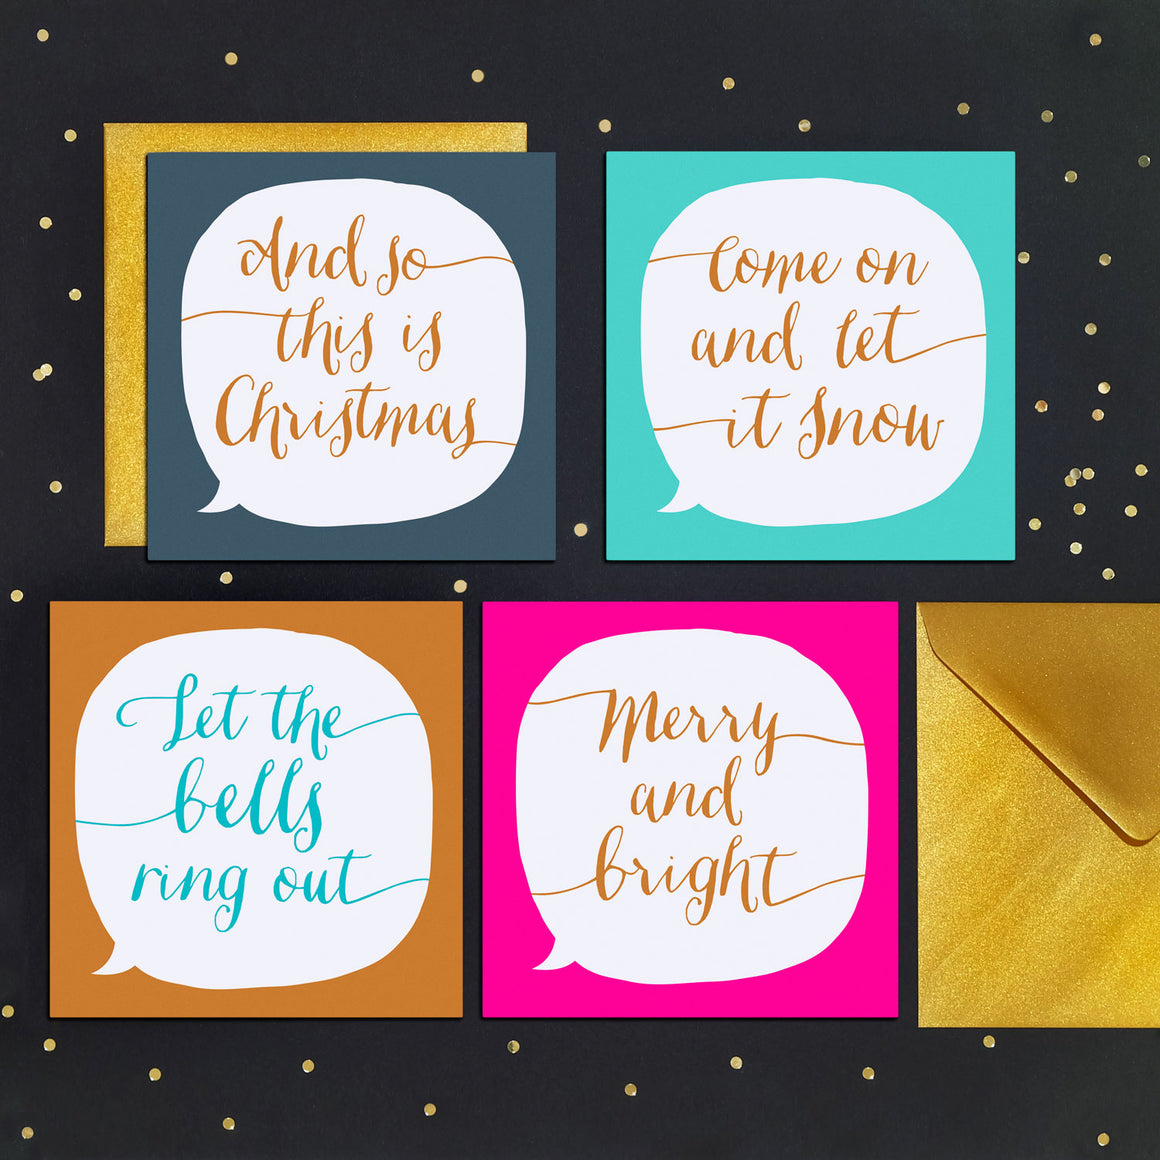 Come On And Let It Snow Song Lyrics Christmas Card